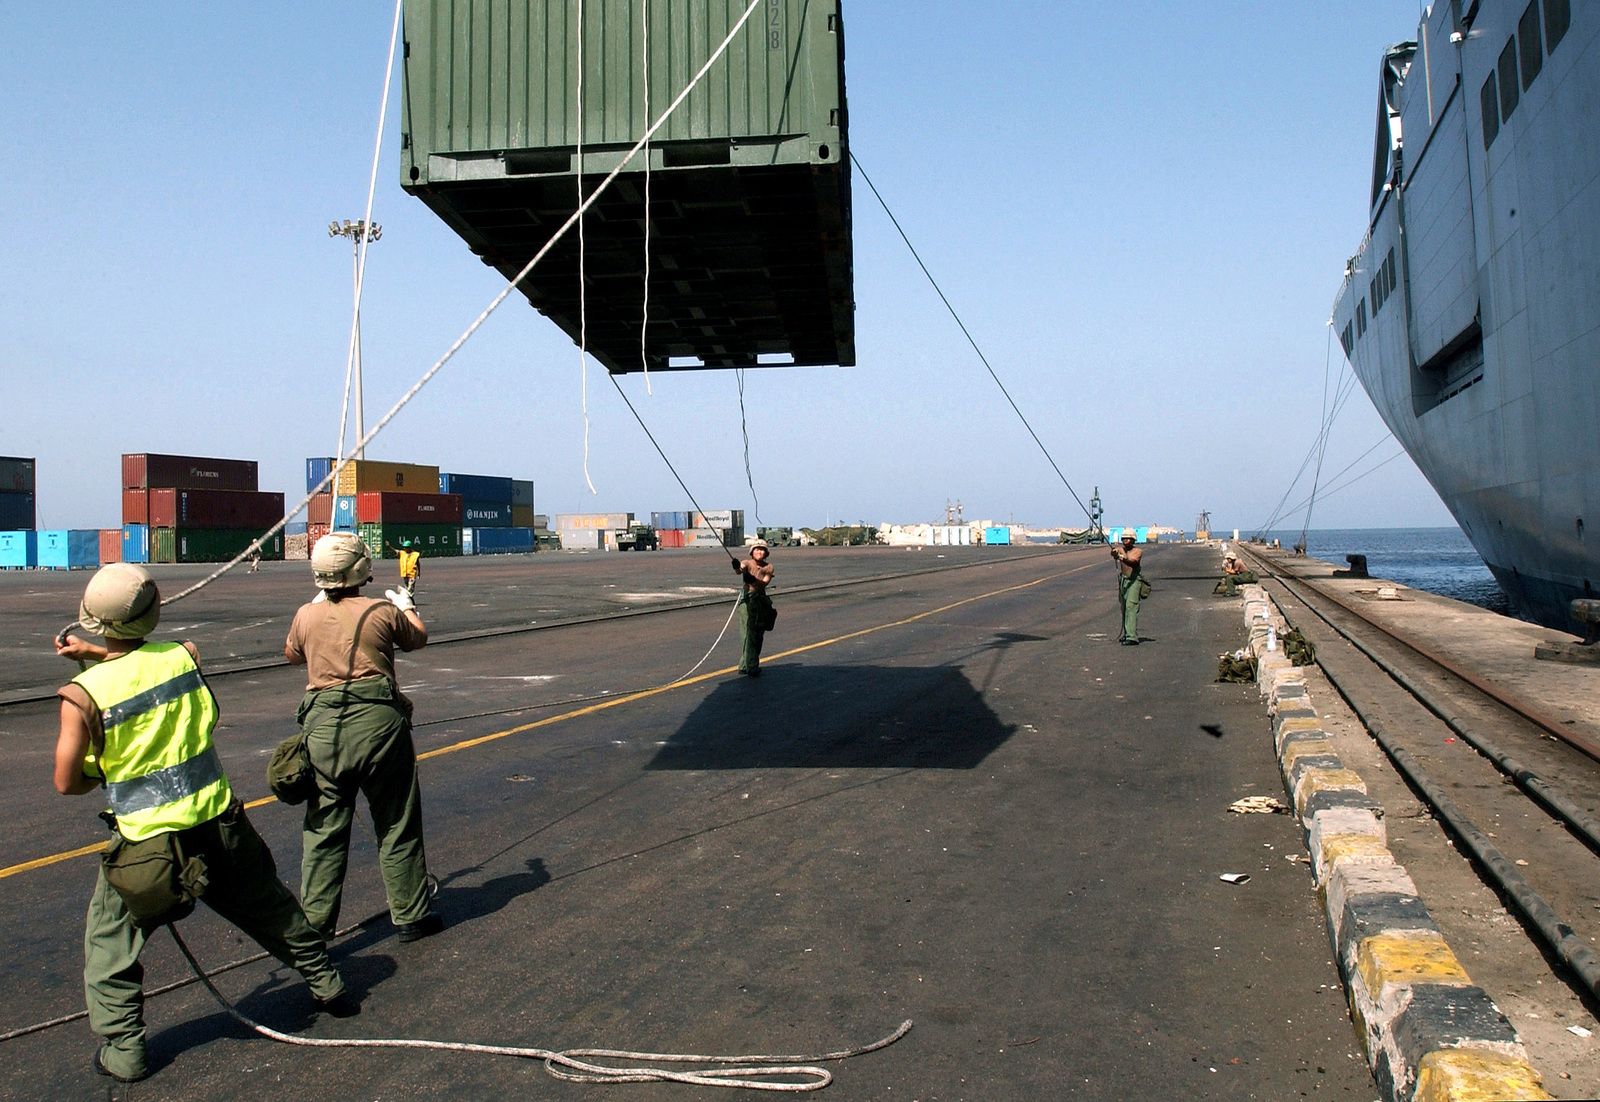 US Army (USA) 159th Transportation Detachment Soldiers off load containers from the Military Sealift Command (MSC) BOB HOPE CLASS; Large, Medium-Speed RO-RO ship USNS PILILAAU (T-ARK 304), at the Port of Dekheila, Egypt, during Exercise BRIGHT STAR 01-02. Bright Star is a multi-national exercise involving more than 74,000 troops from 44 countries that enhances regional stability and military cooperation among US Military, our key allies, and our regional partners